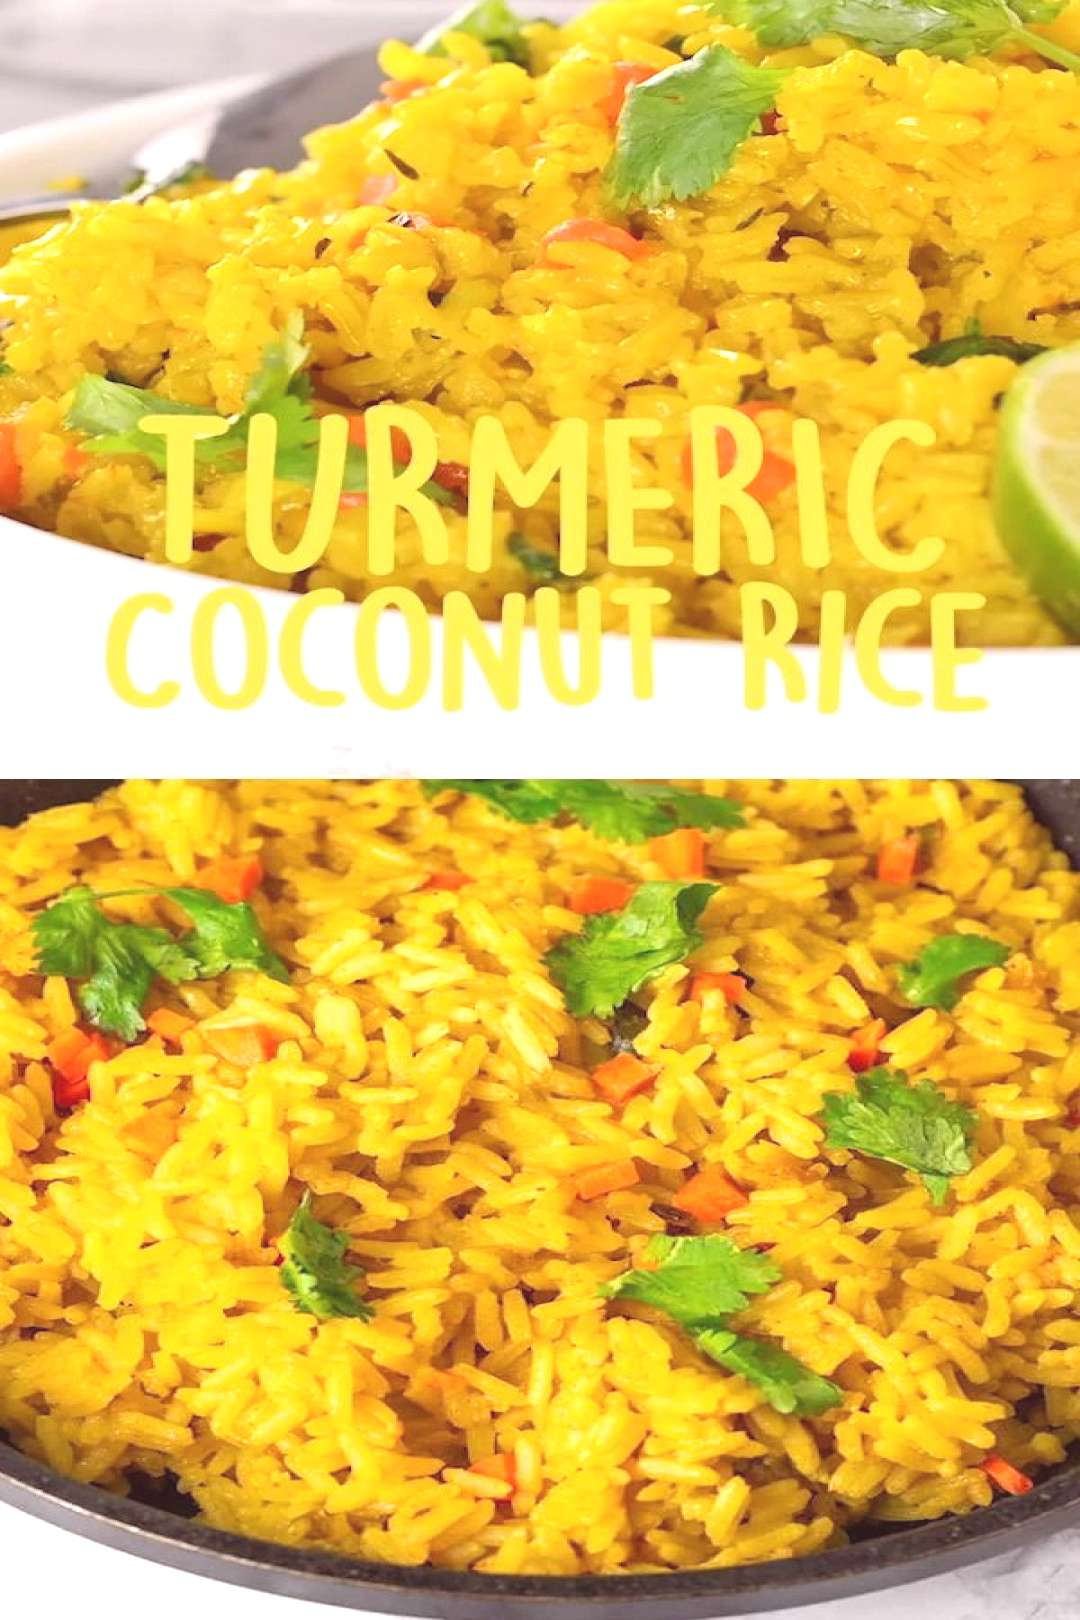 Enjoy this delicious and healthy Turmeric Coconut Rice for your next meal. Brown rice simmered in s